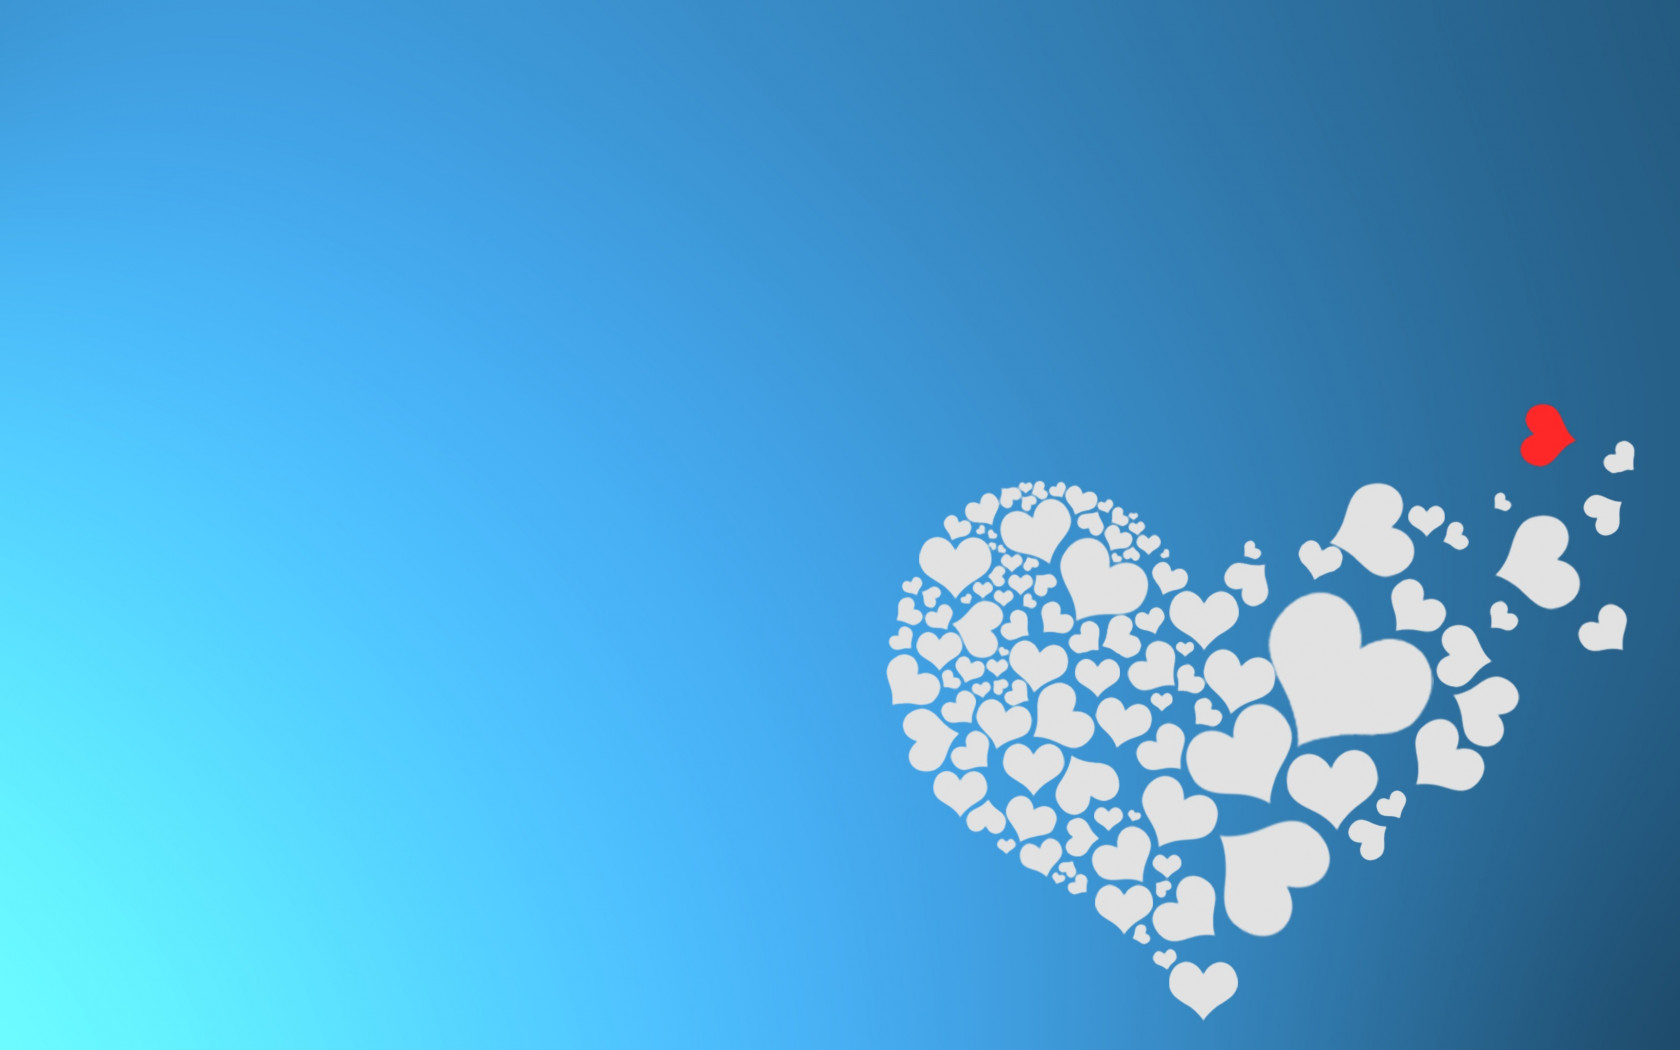 The hearts of love wallpaper 1680x1050